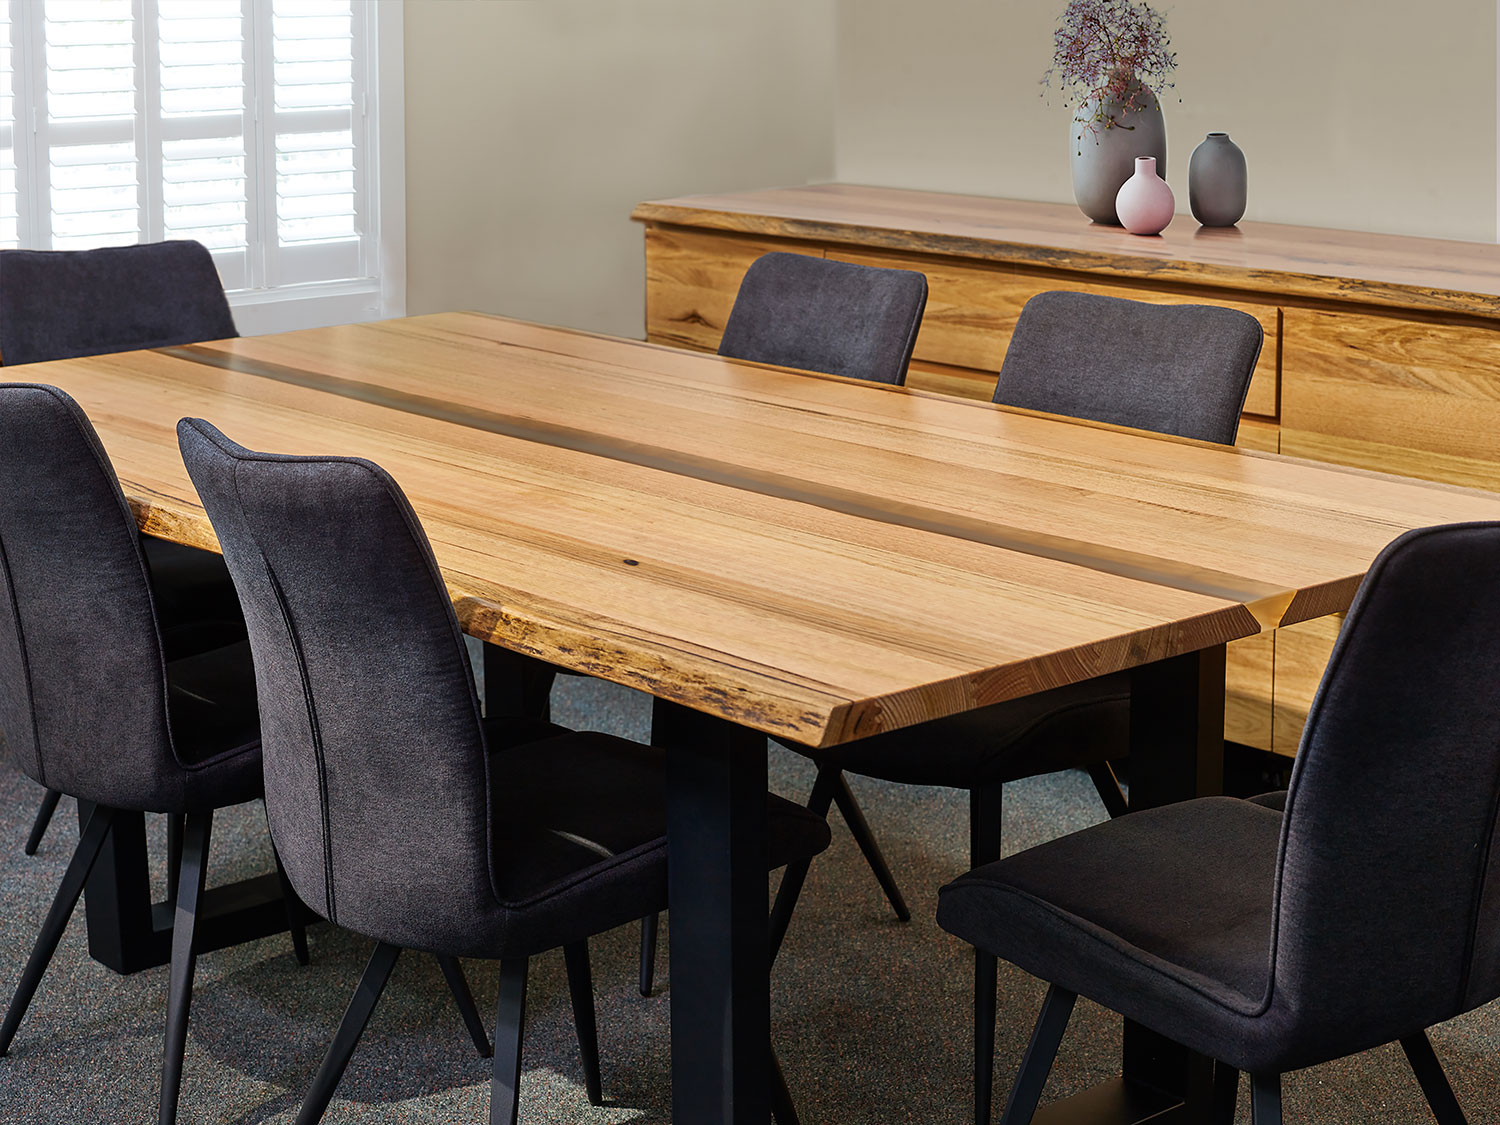 The Messmate Resin River dining table